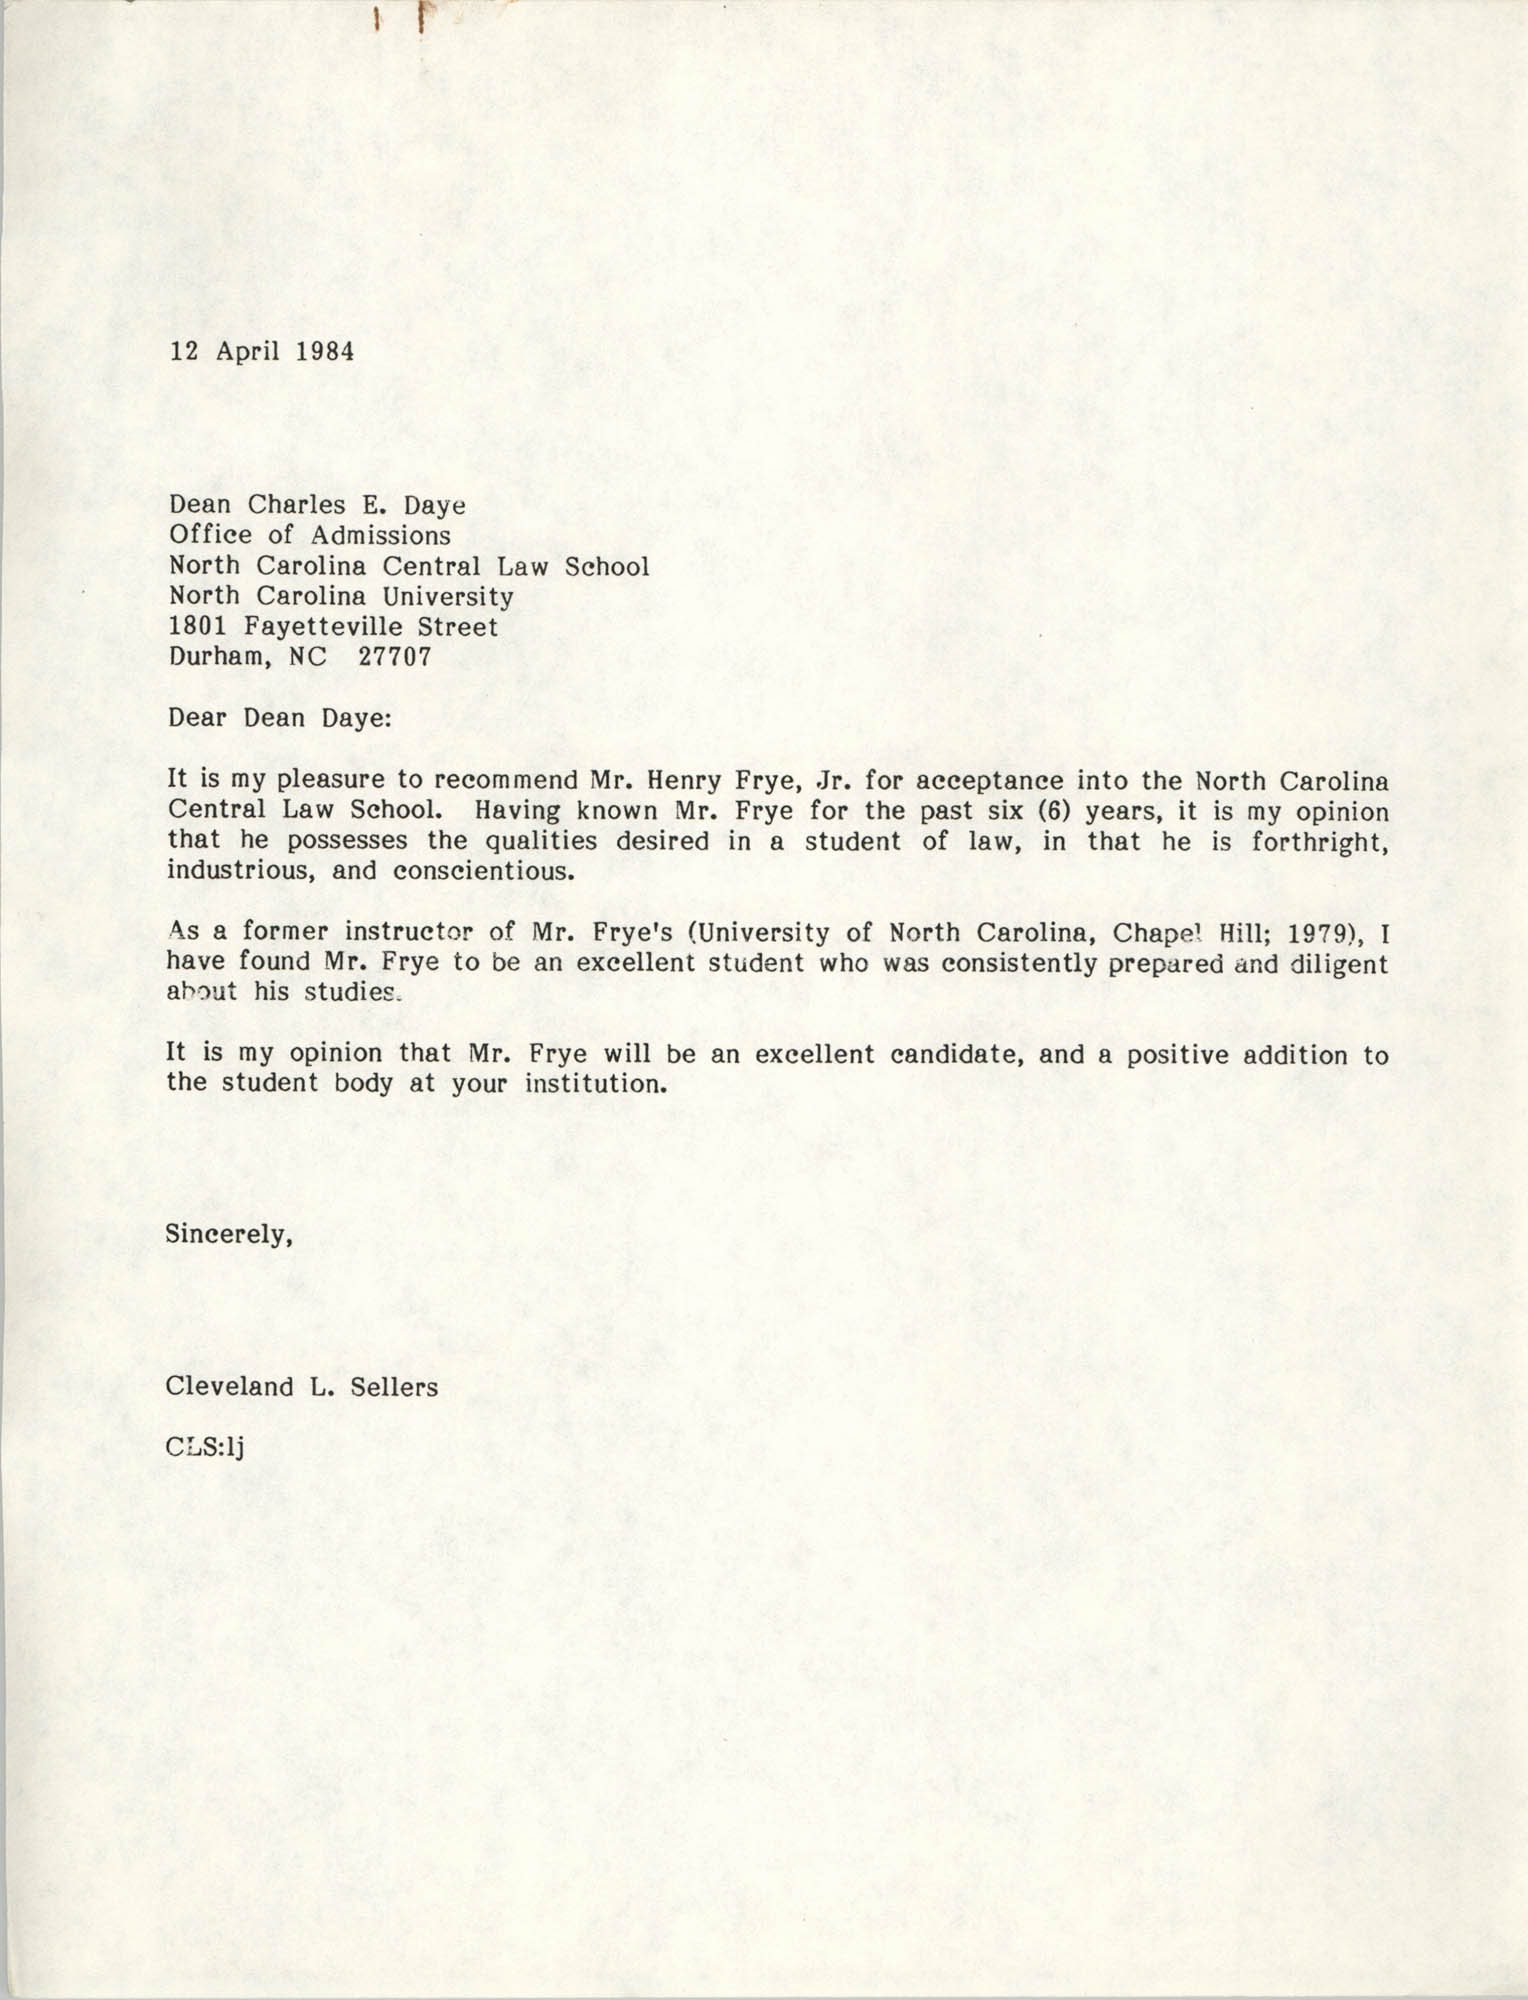 Letter from Cleveland Sellers to Charles E. Daye, April 12, 1984